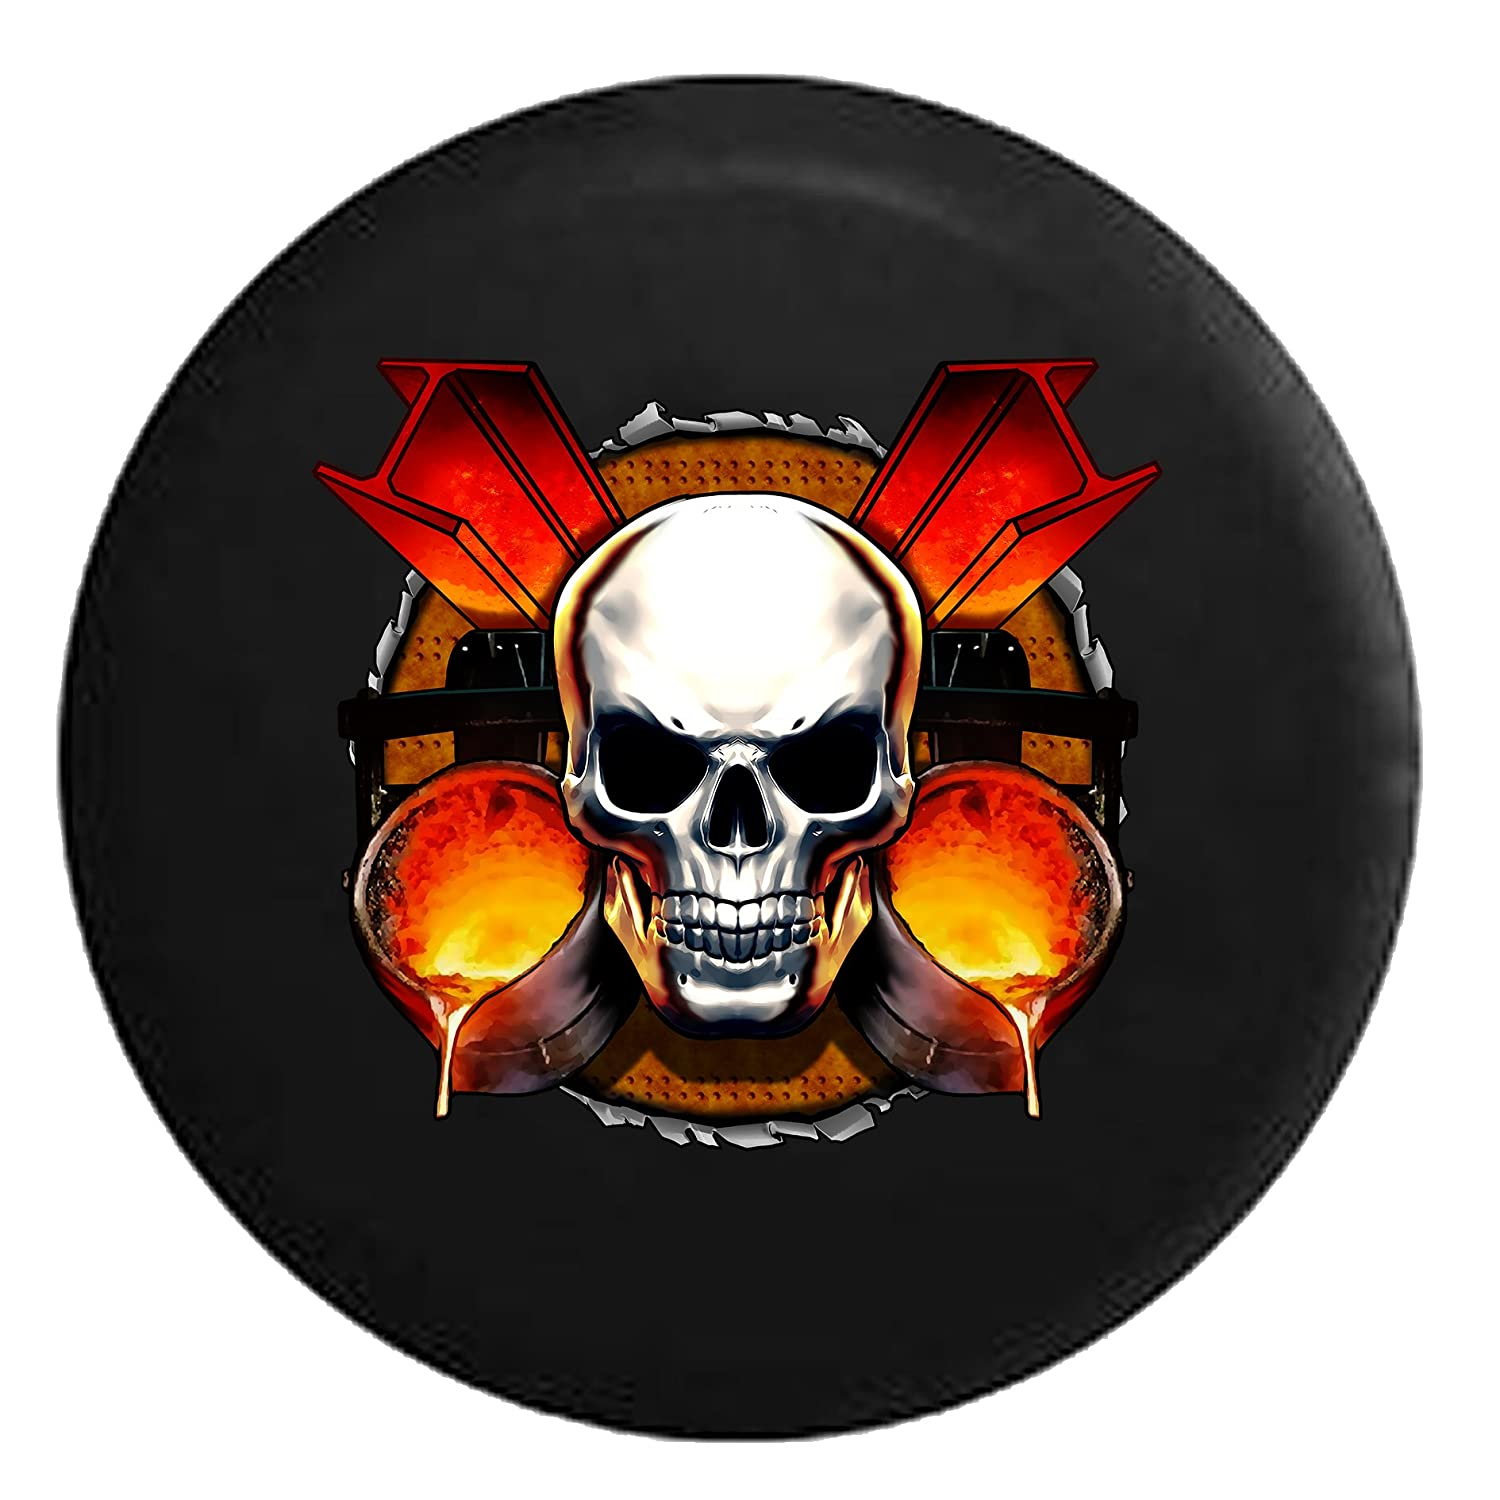 Amazon.com: Skull Iron Worker I Beam Welder TradesSpare Tire Cover Black 32 in: Automotive